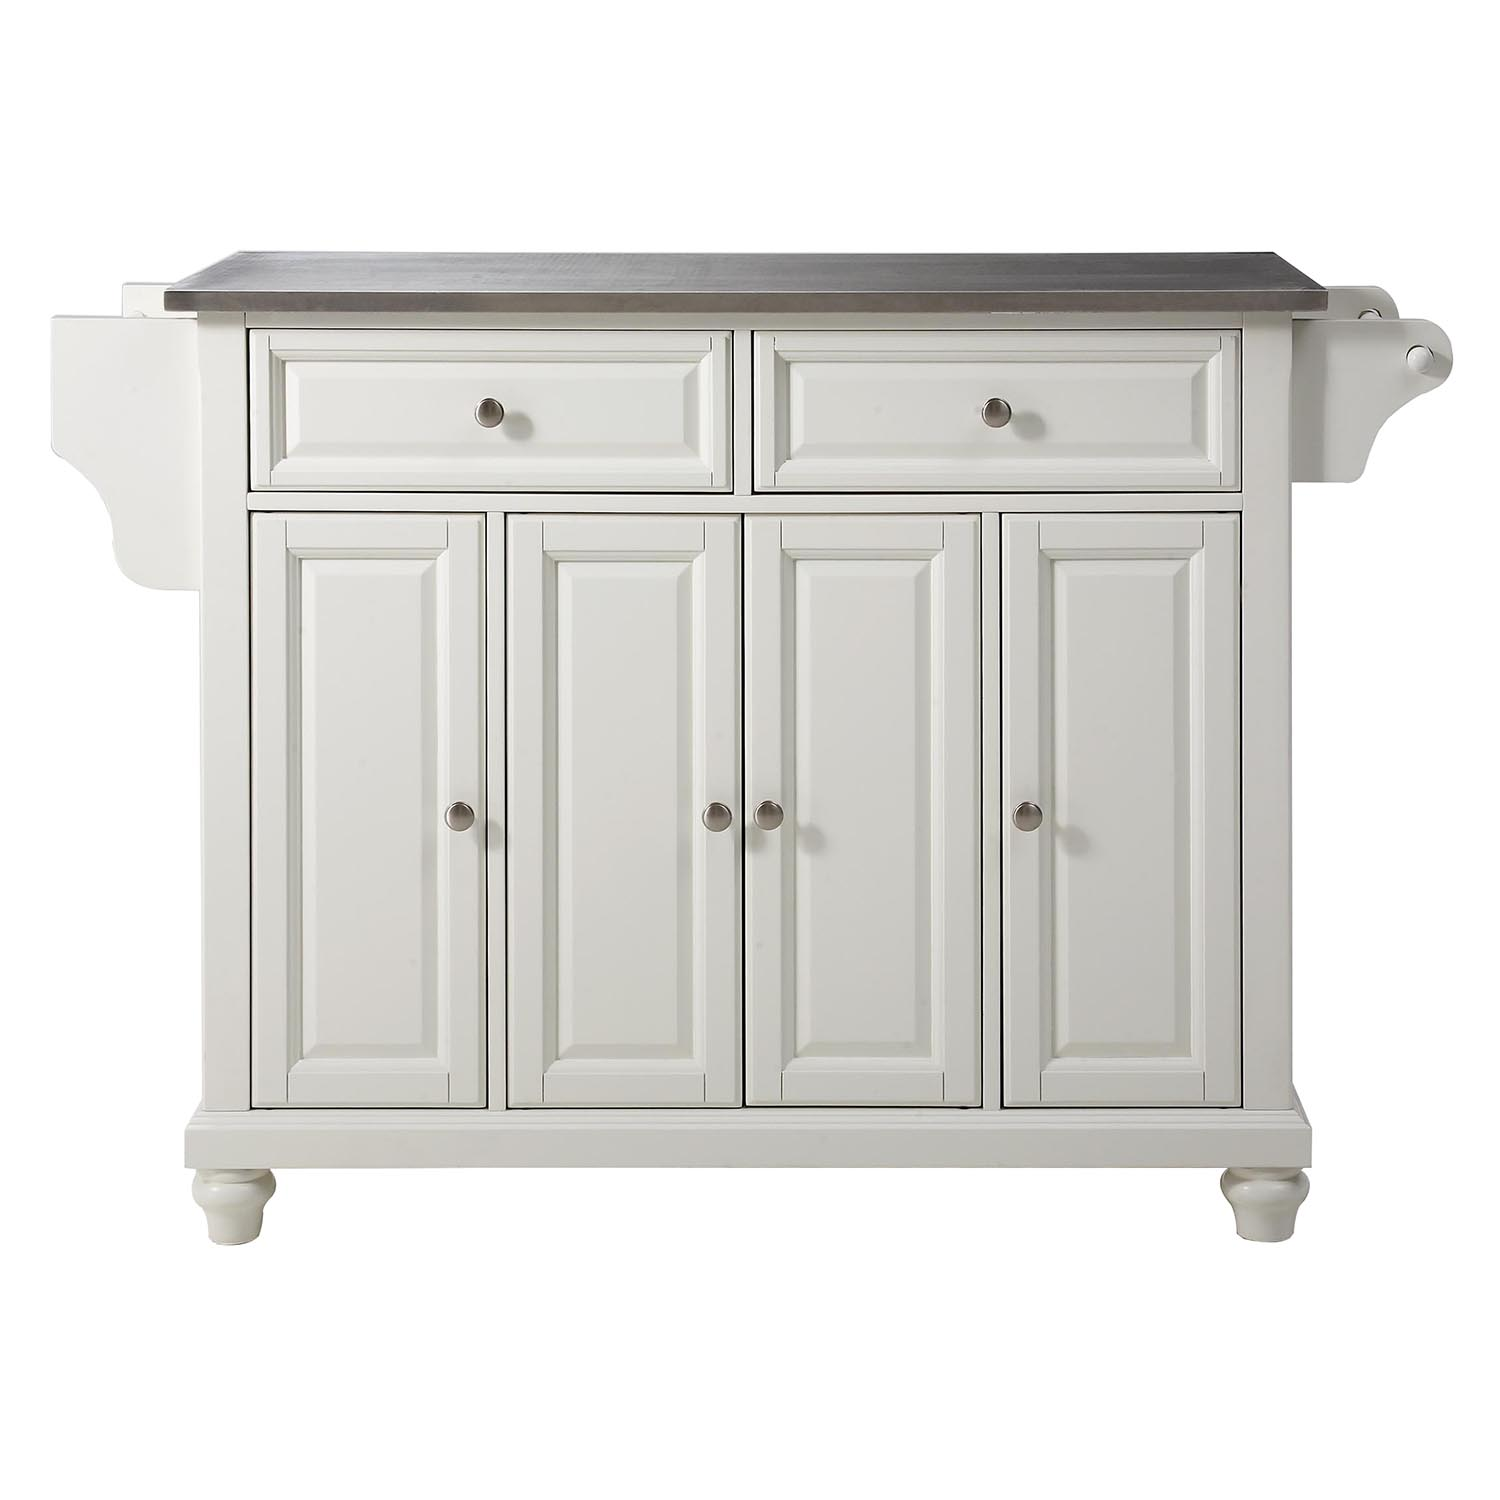 white kitchen island with stainless steel top cambridge stainless steel top kitchen island white dcg 2219